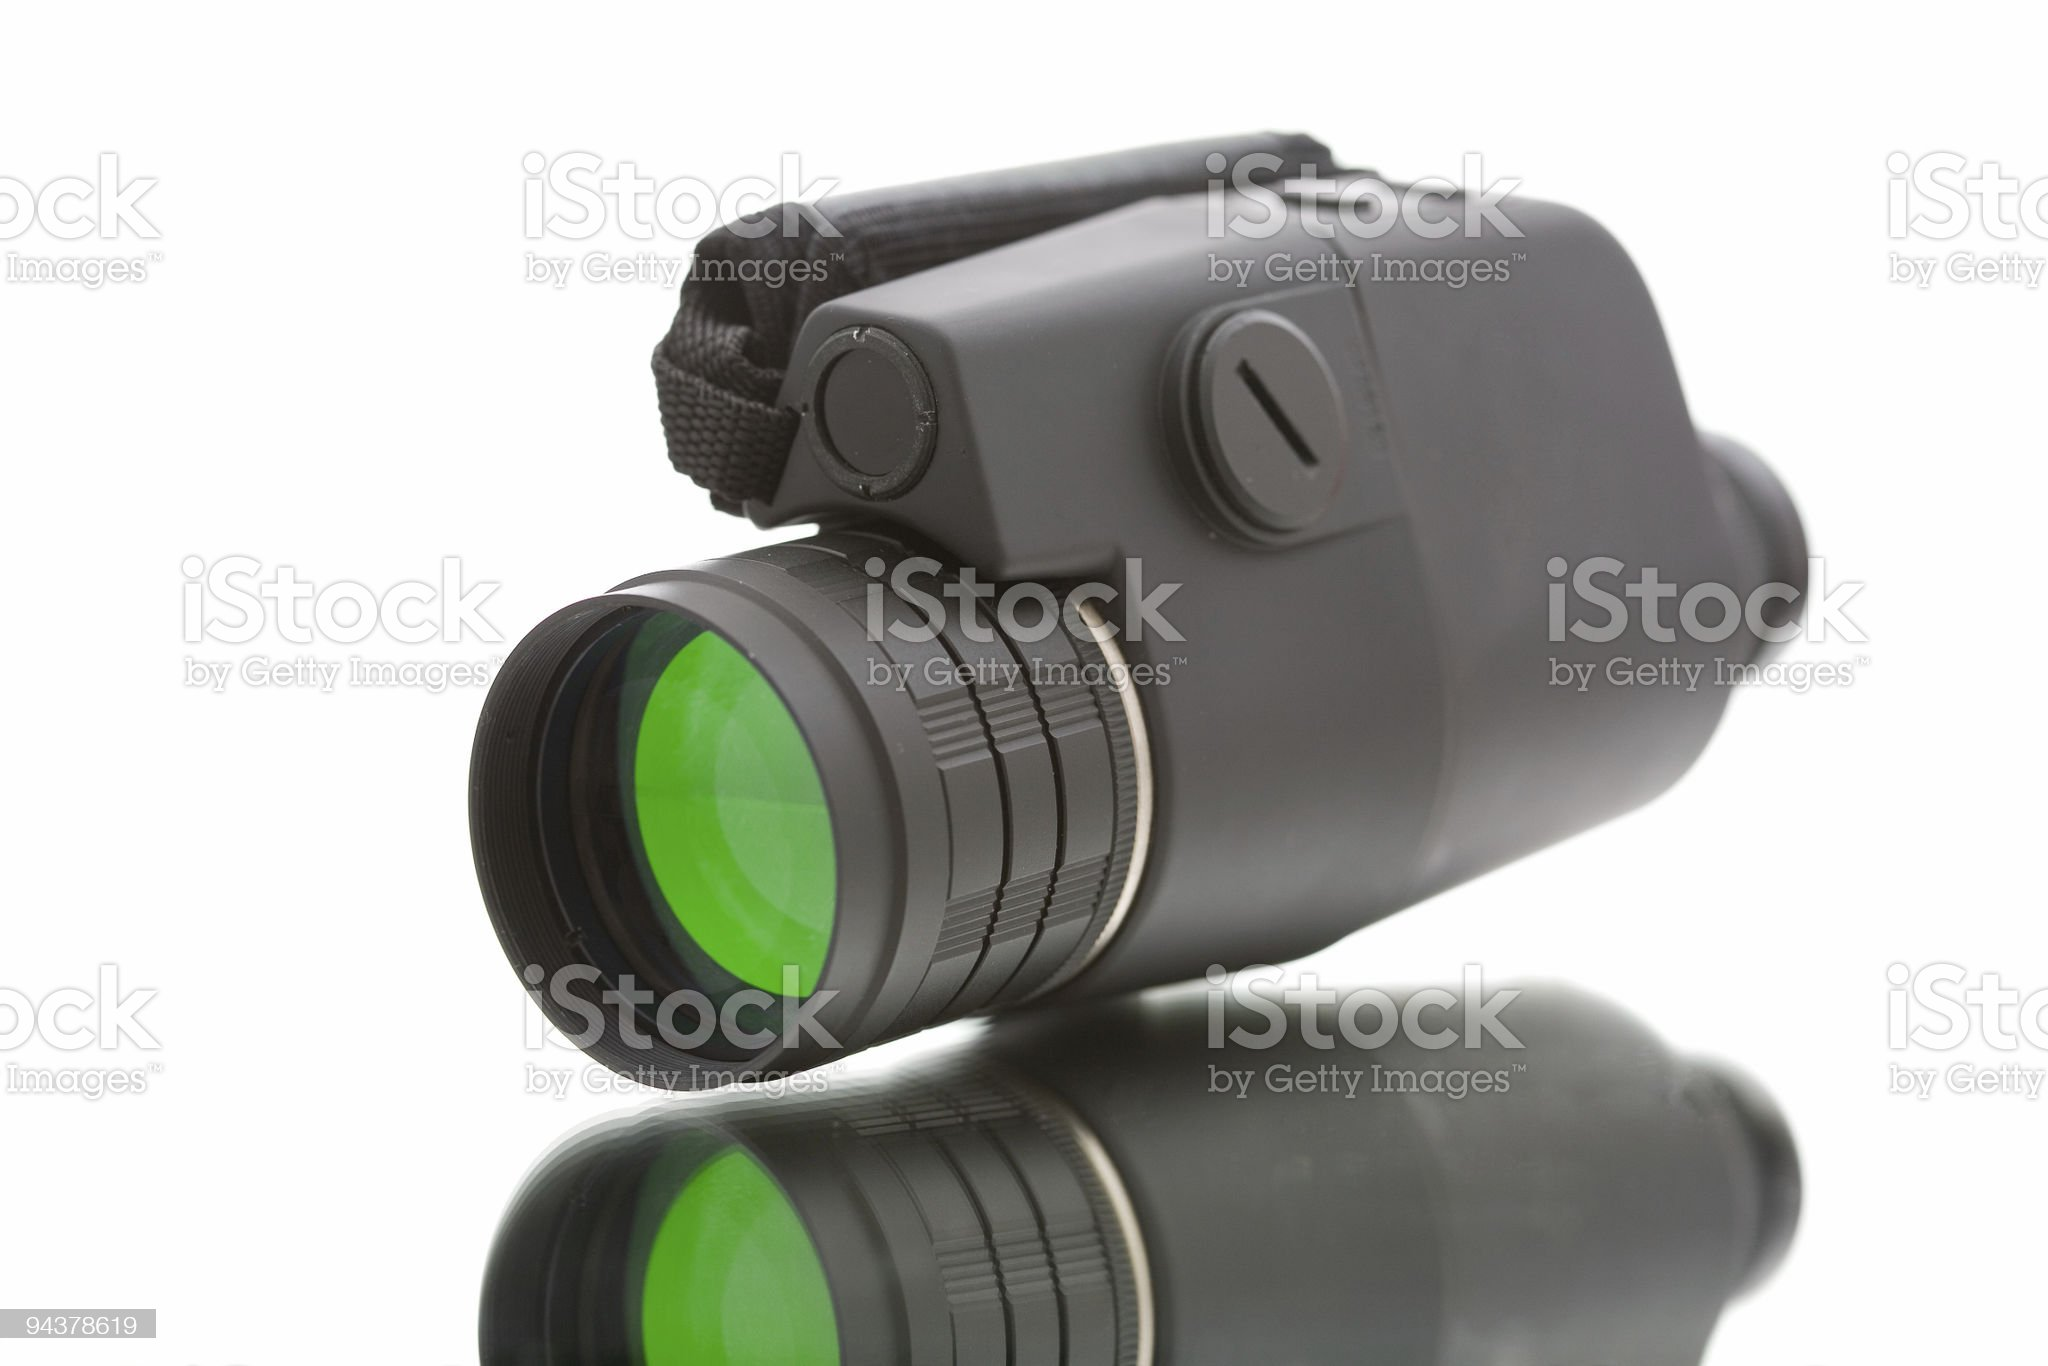 Night vision device royalty-free stock photo